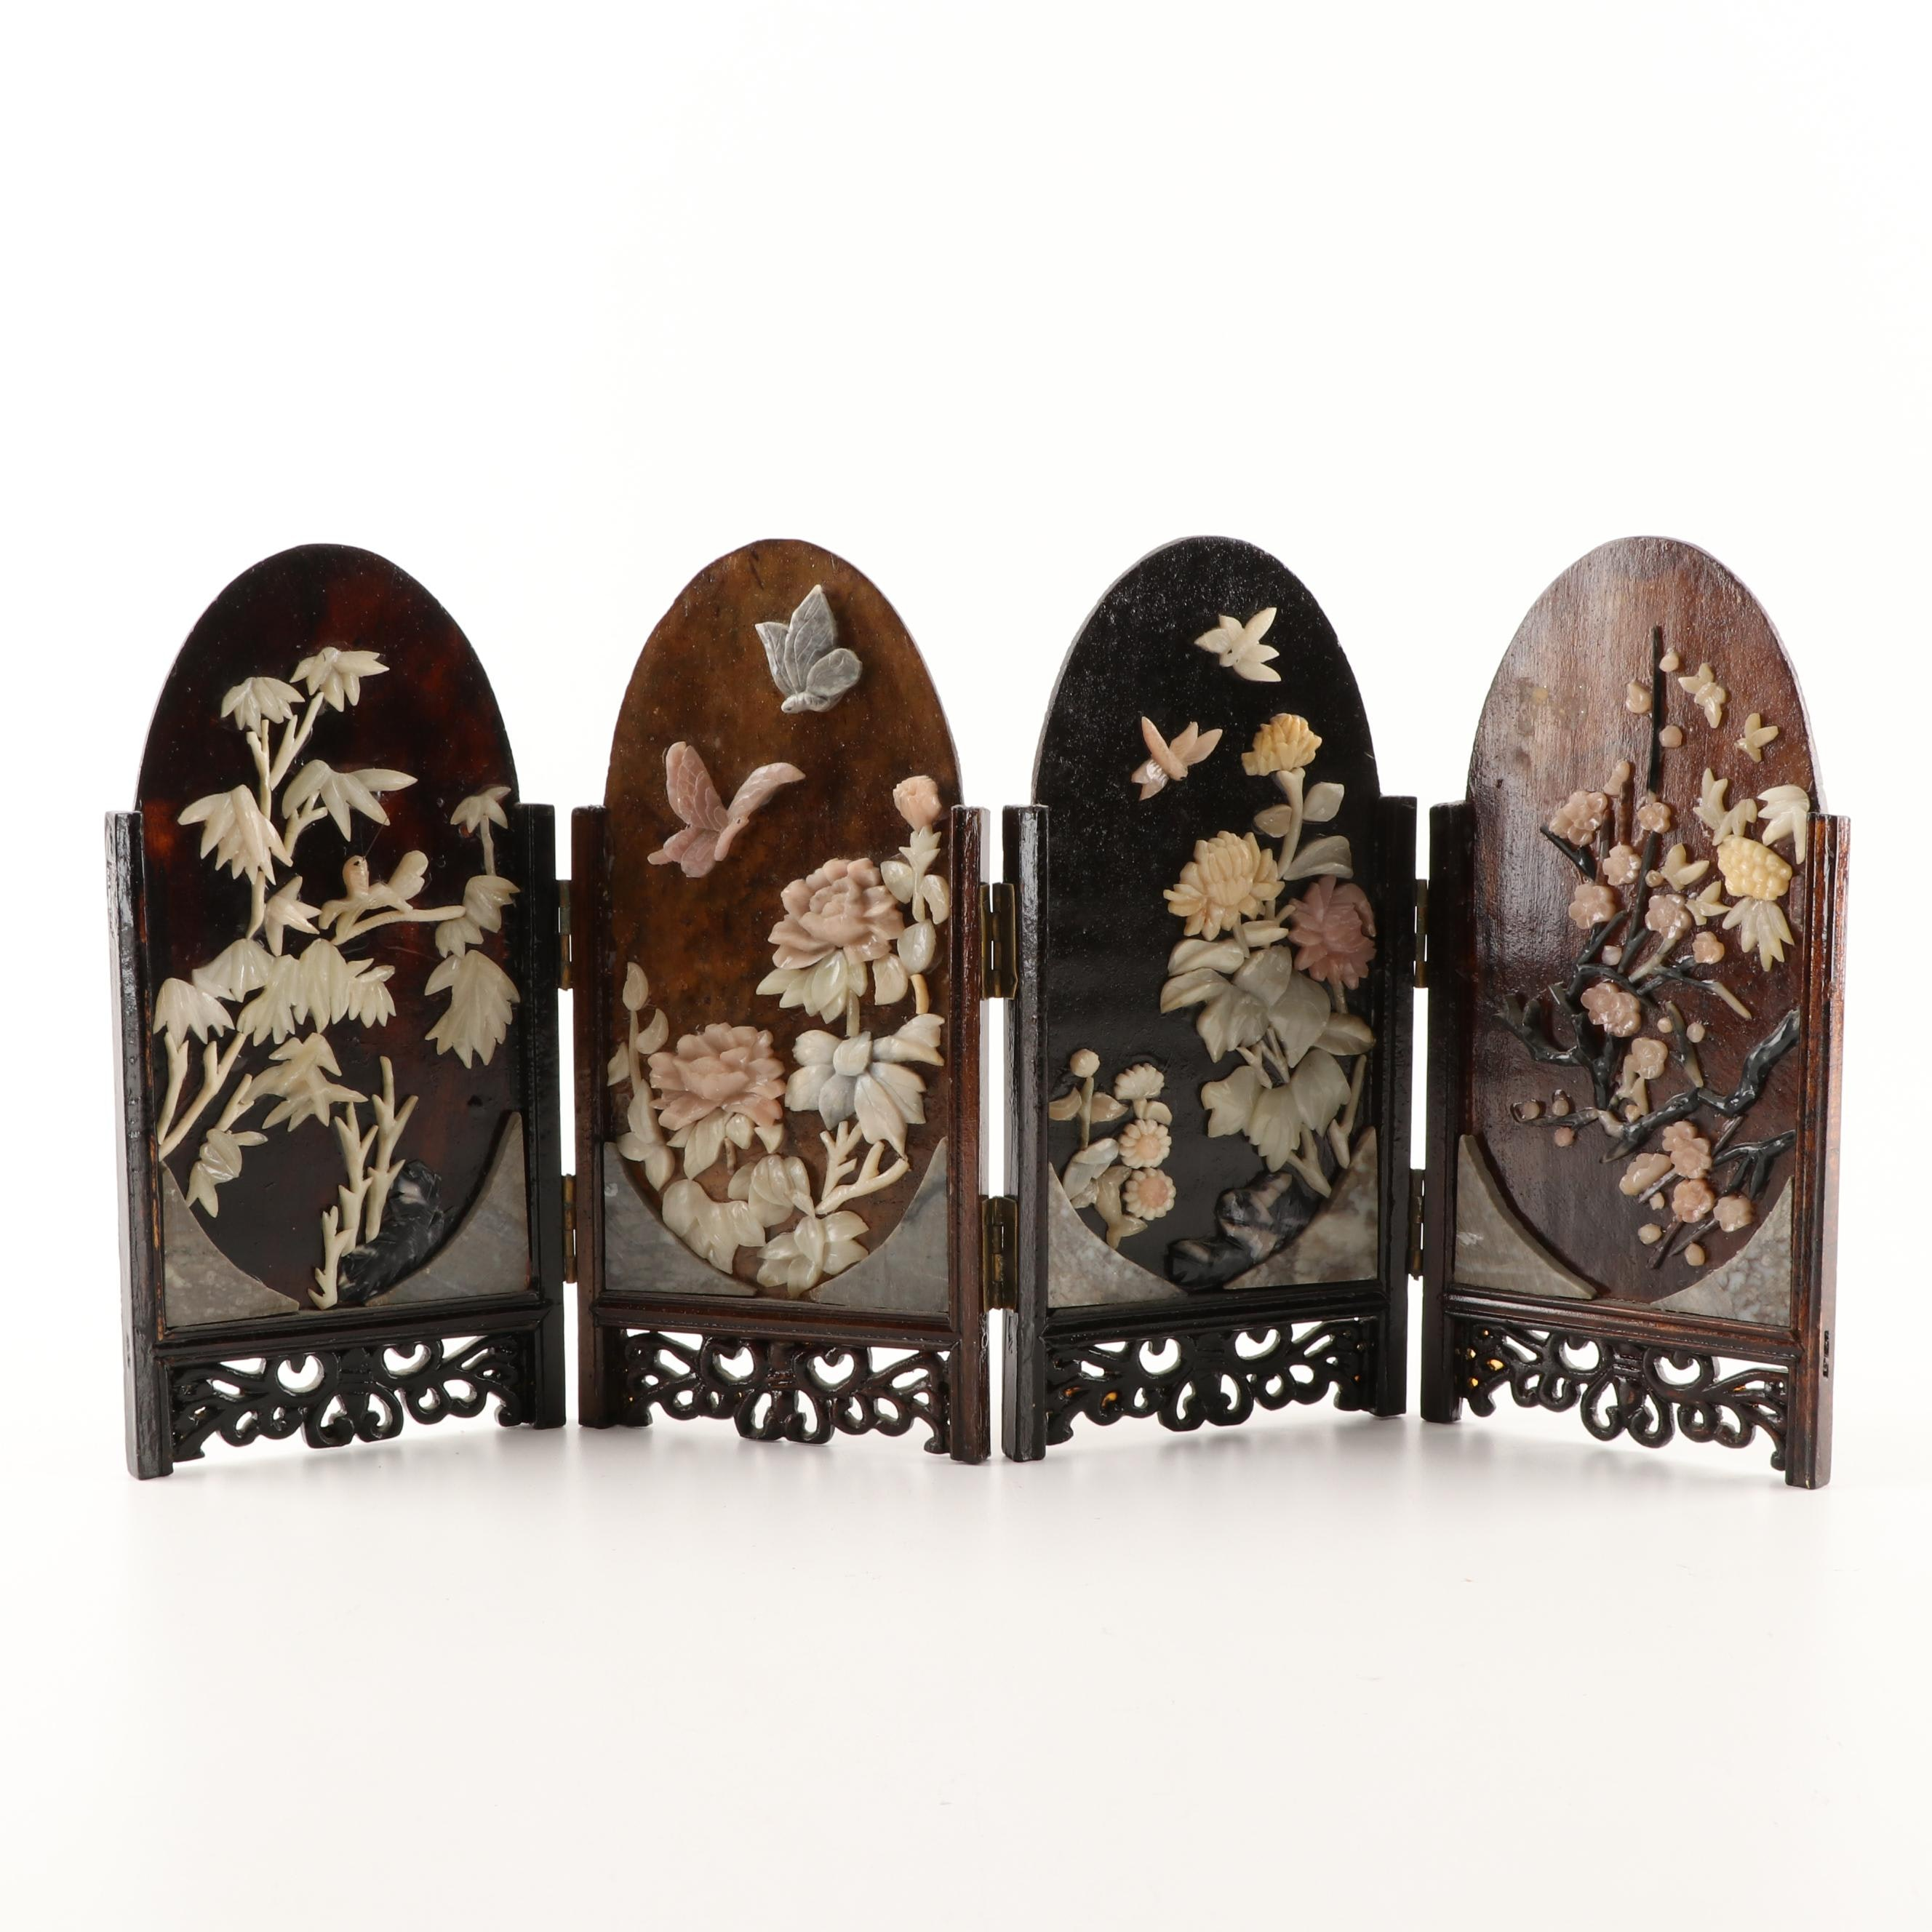 Chinese Carved Stone Miniature Wooden Folding Screen